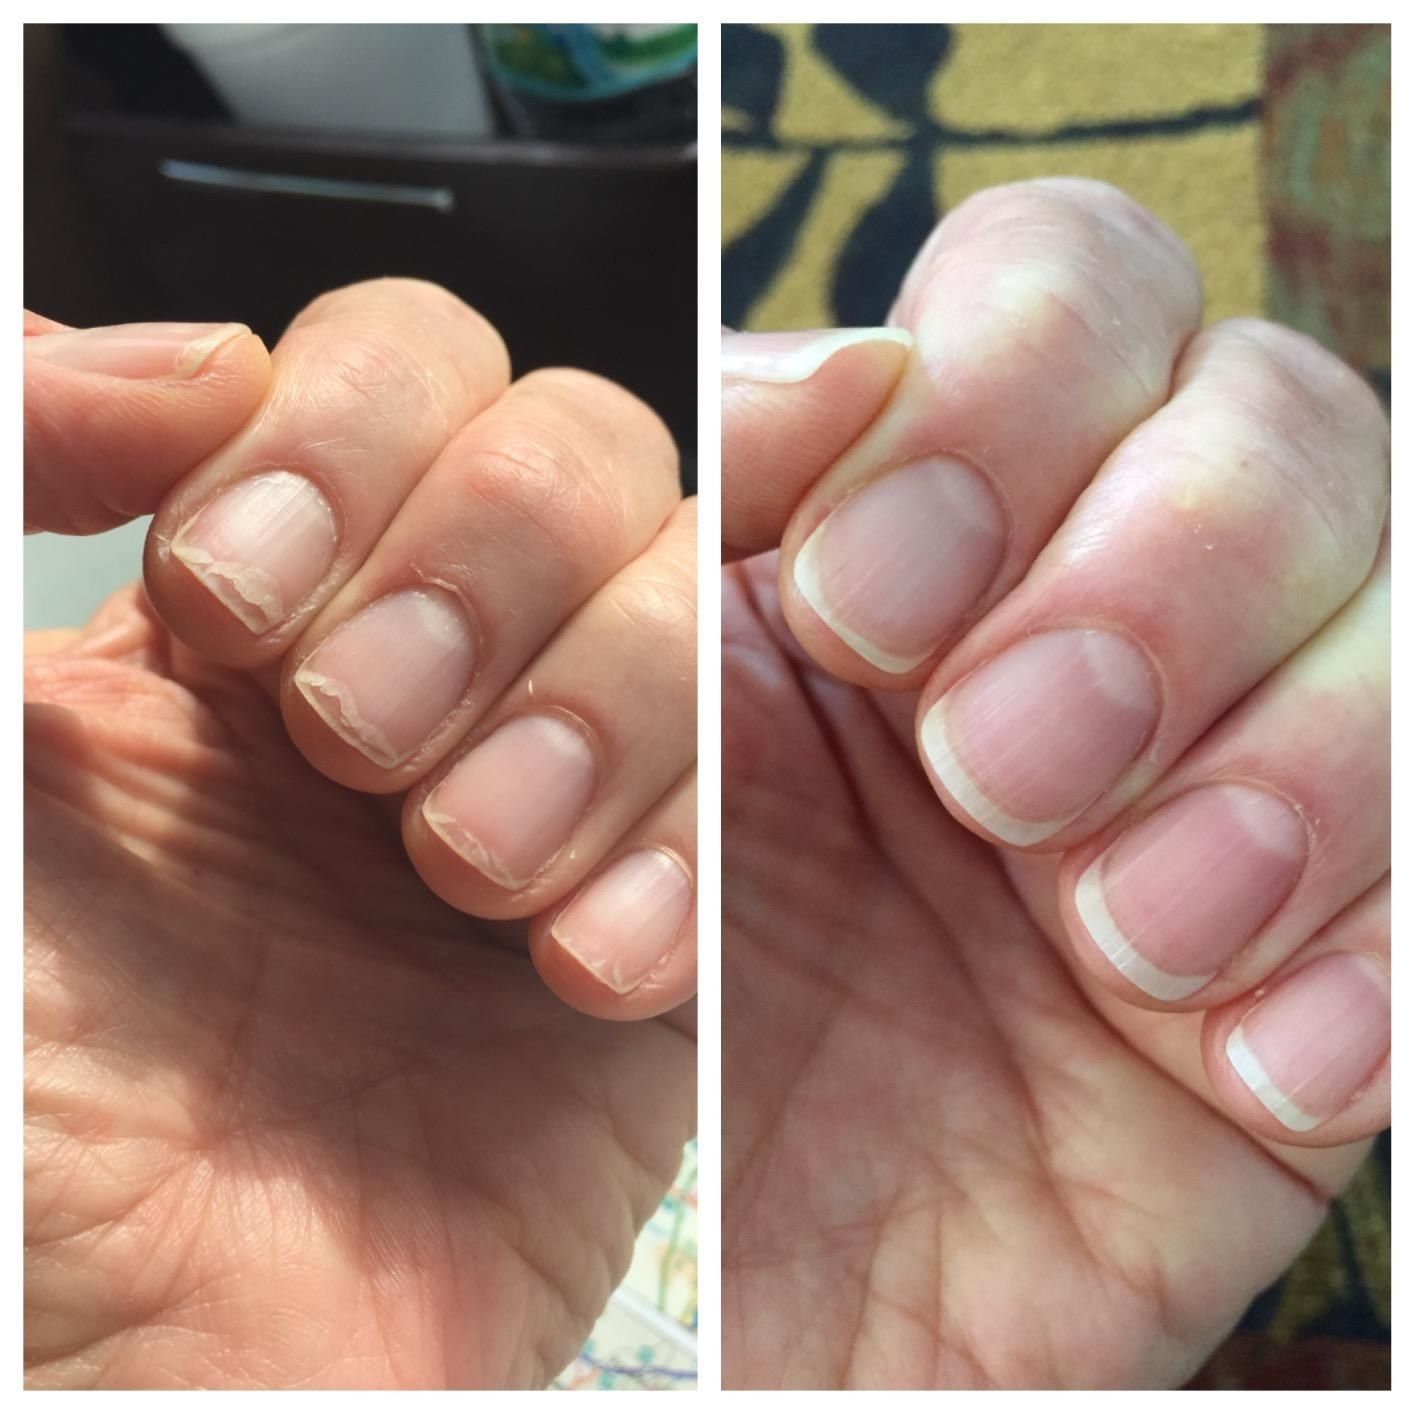 Before and after pic of reviewer's brittle nails and stronger ones